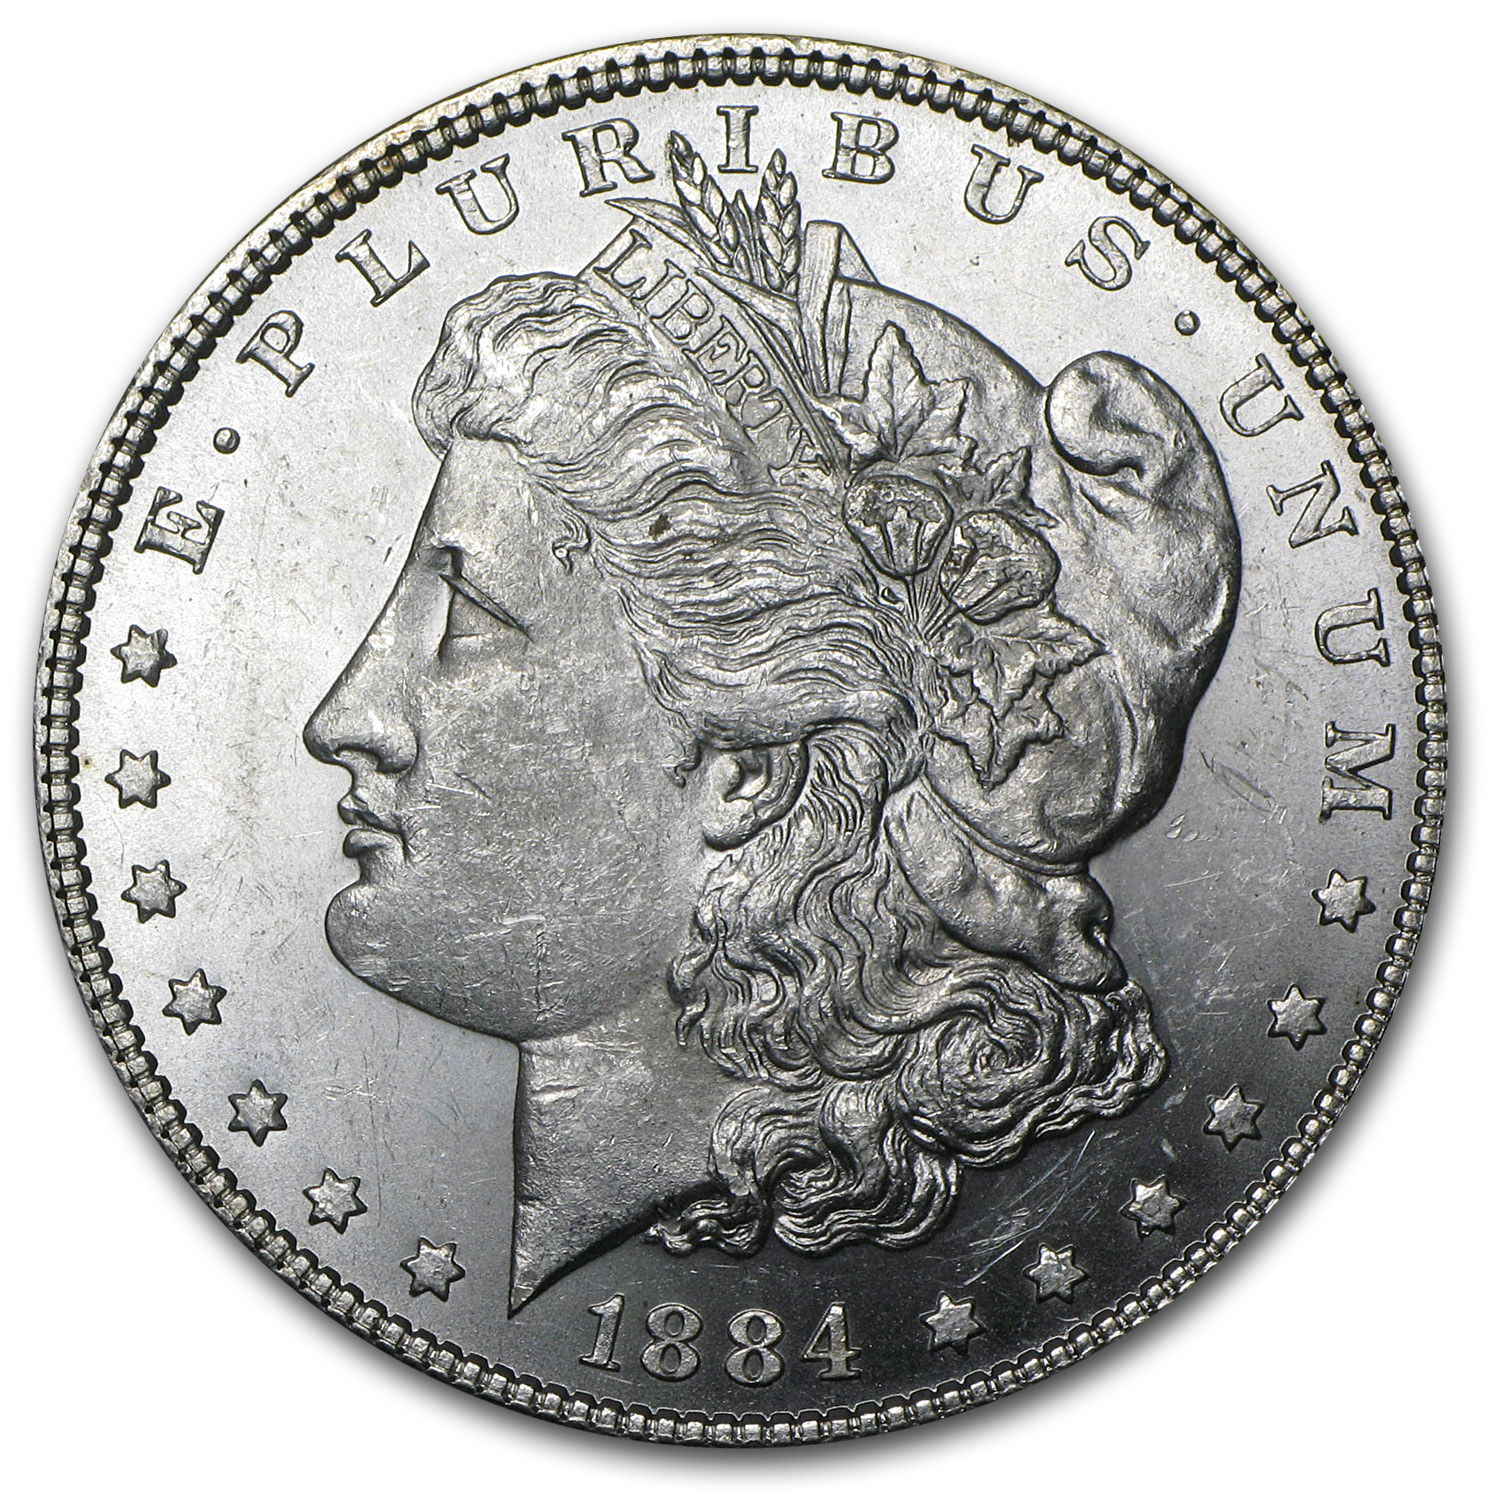 1884 Morgan Dollar - Brilliant Uncirculated